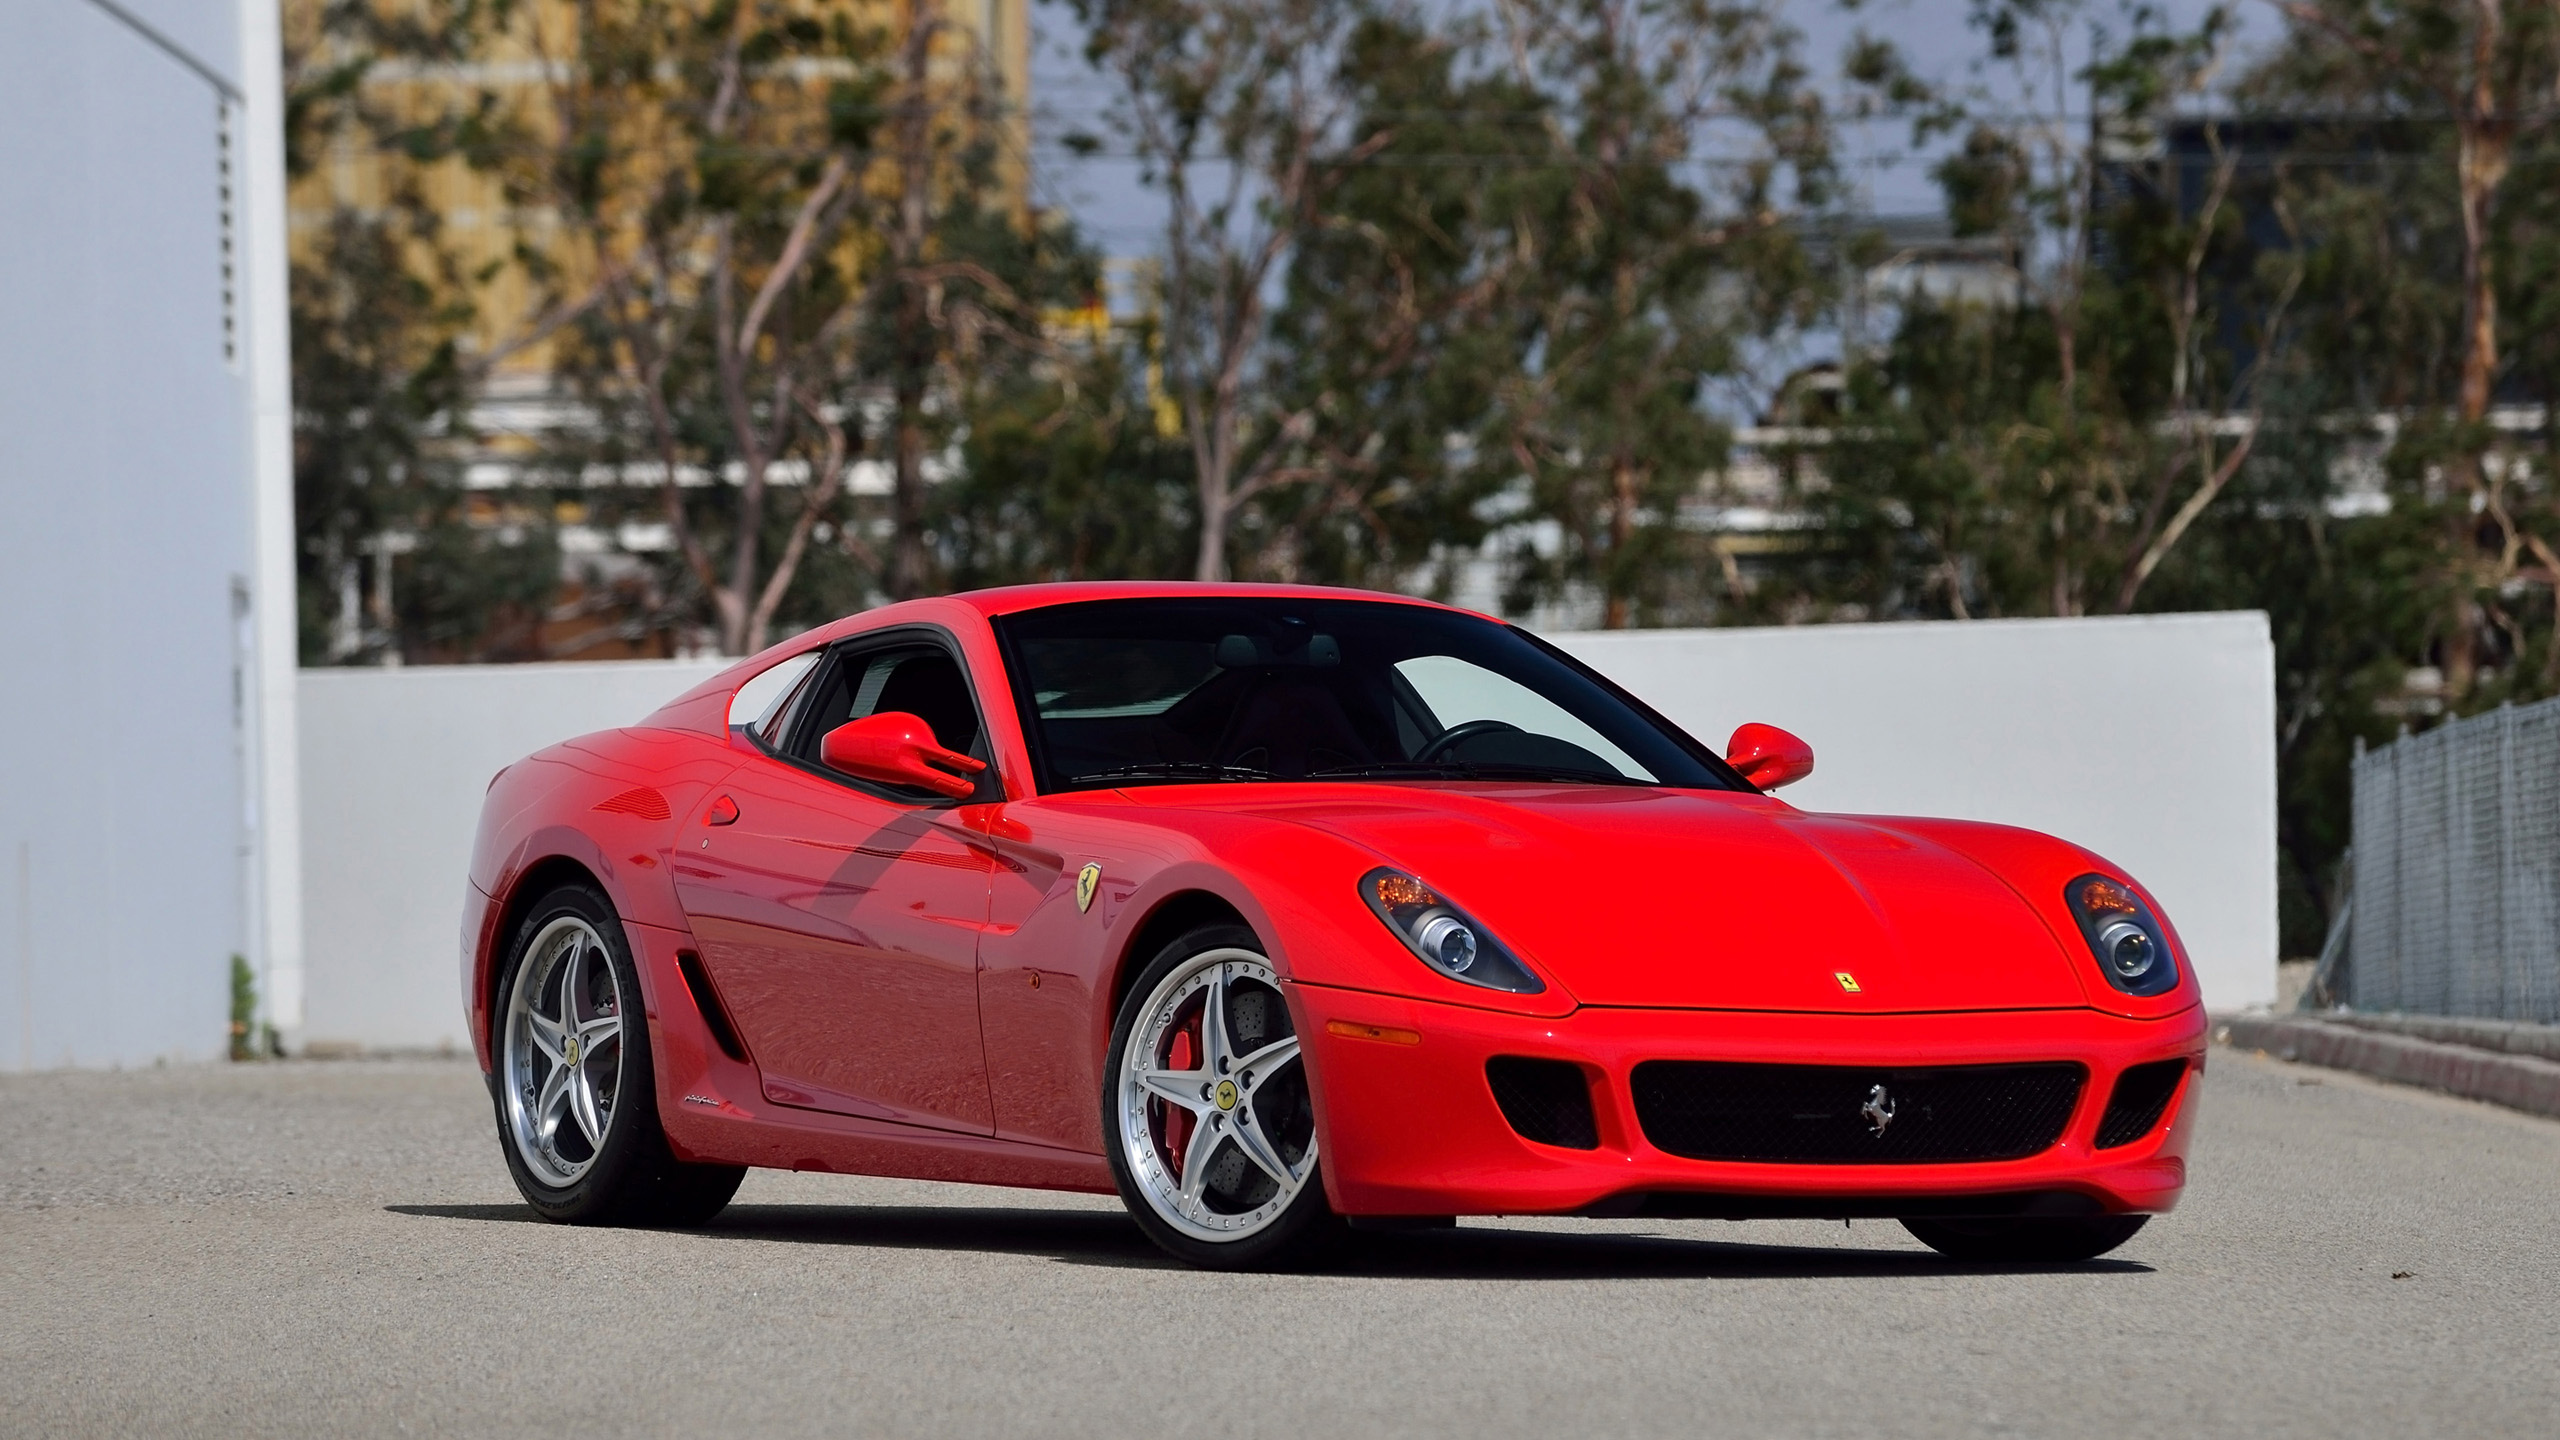 2007 Ferrari 599 GTB Fiorano Wallpaper  HD Car Wallpapers